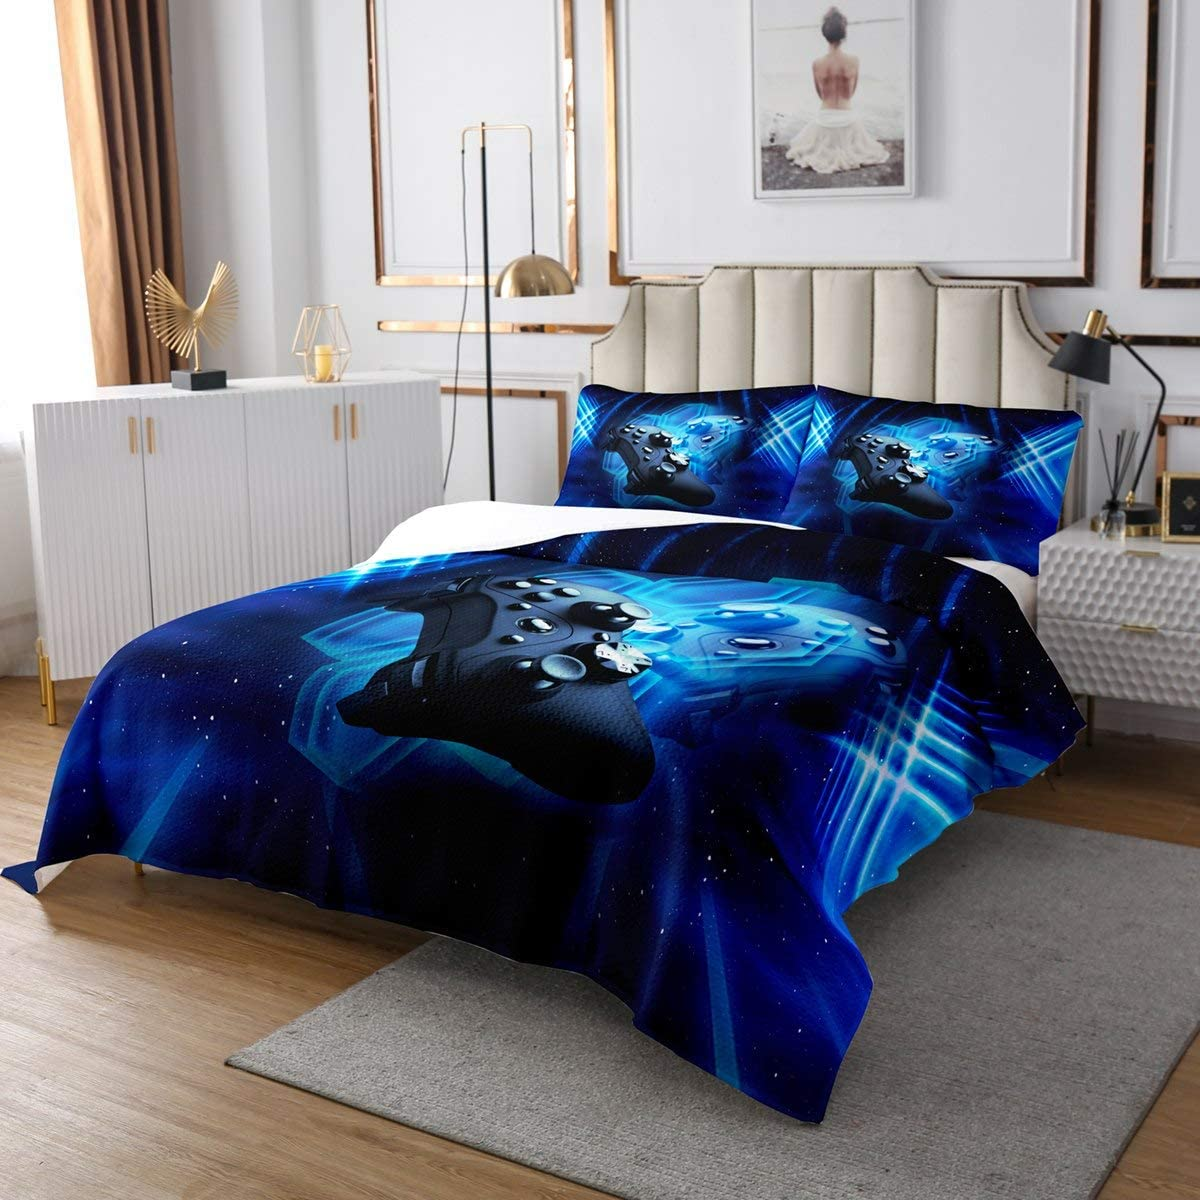 Gaming Coverlet Set Boys Teens Game Room Decor Quilted Coverlet Kids Youth Blue Gamepad Gamer Bedspread Modern Novelty Sci-Fi Style Video Games Bedspread Quilt Set Blue Galaxy Starry Sky Decor, Queen